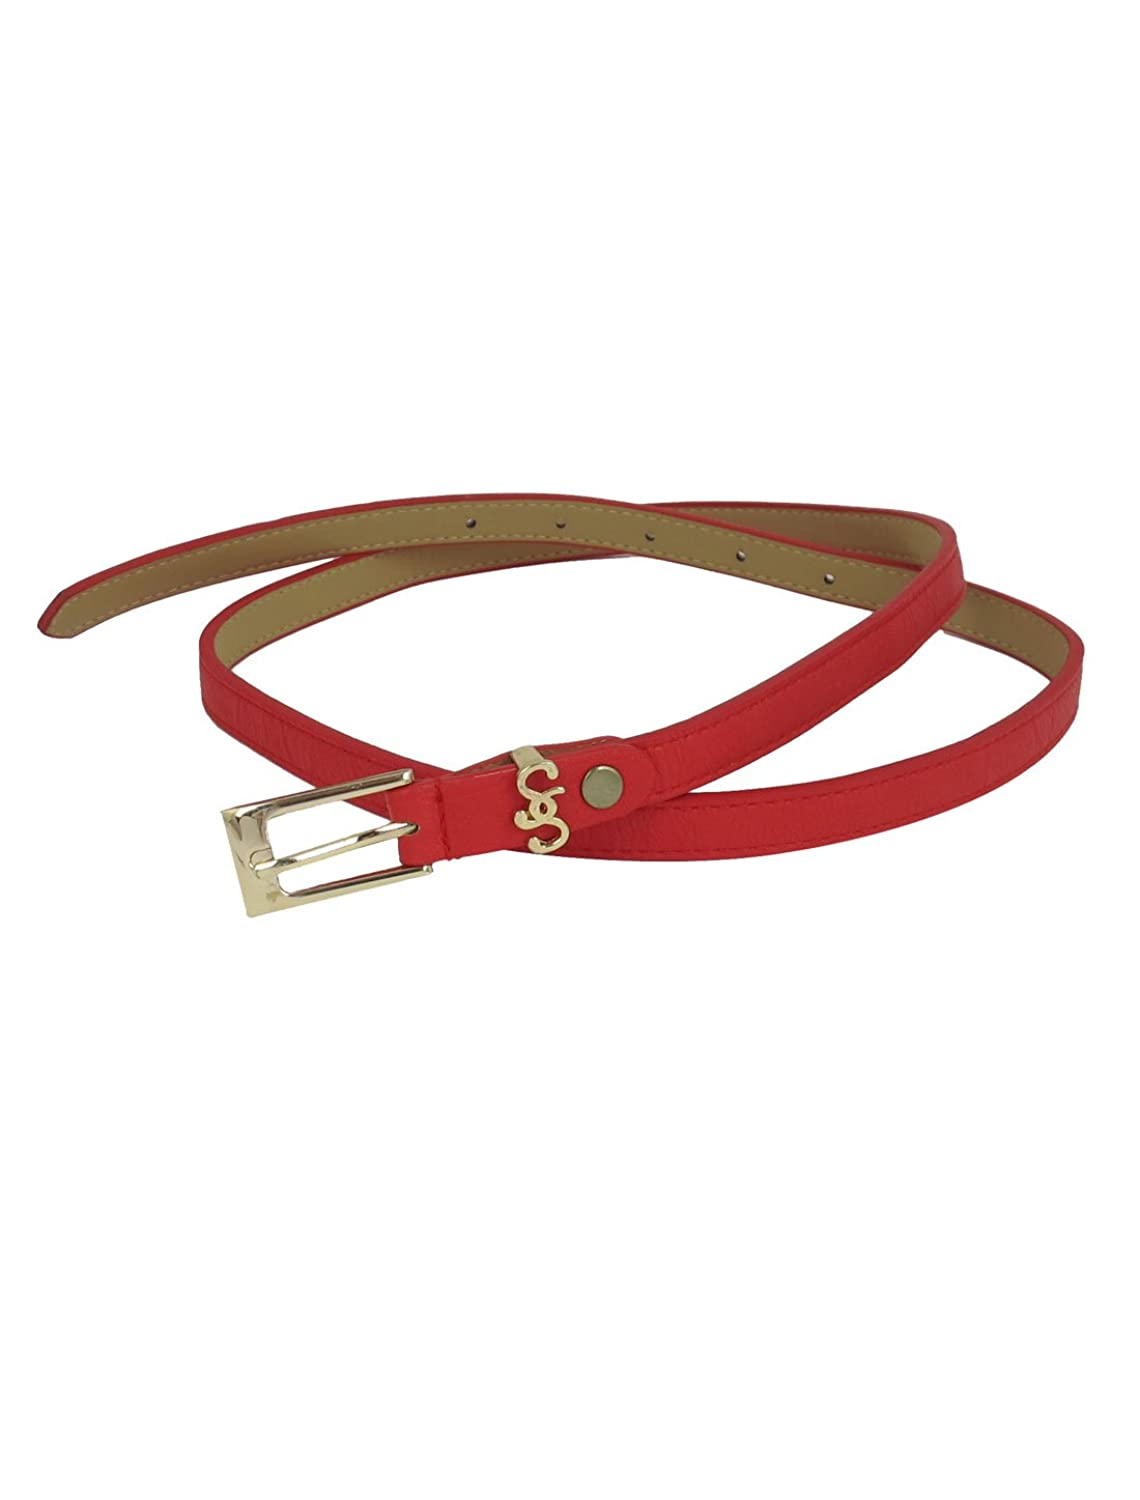 Metal Faux Leather Single Pin Buckle Perforated Slim Waist Belt Red